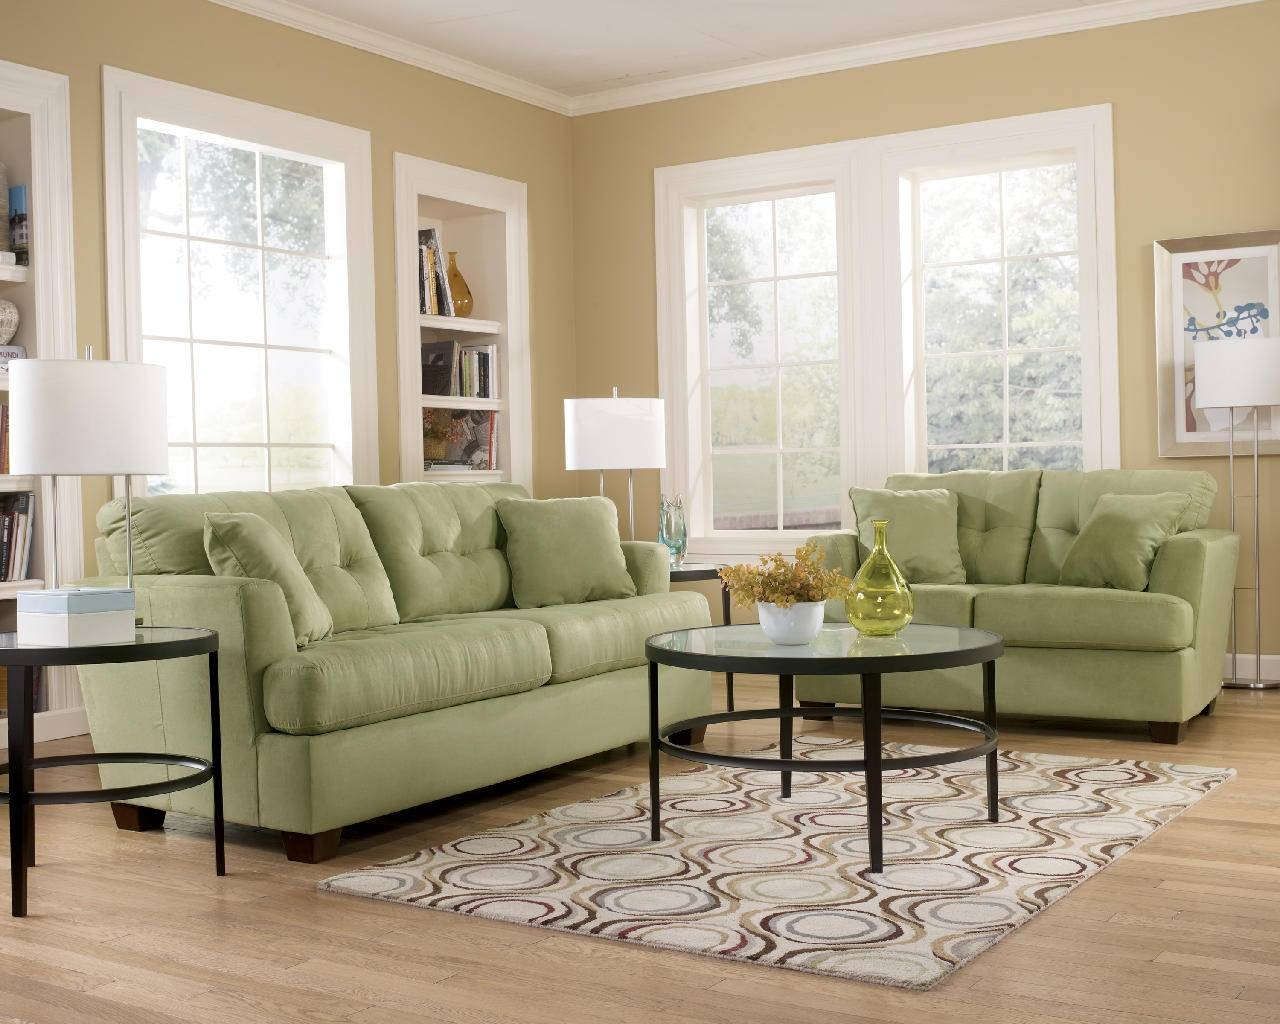 Decorating Ideas For A Sectional Sofa Fragment — Interior Home Design regarding Decorating With a Sectional Sofa (Image 18 of 30)